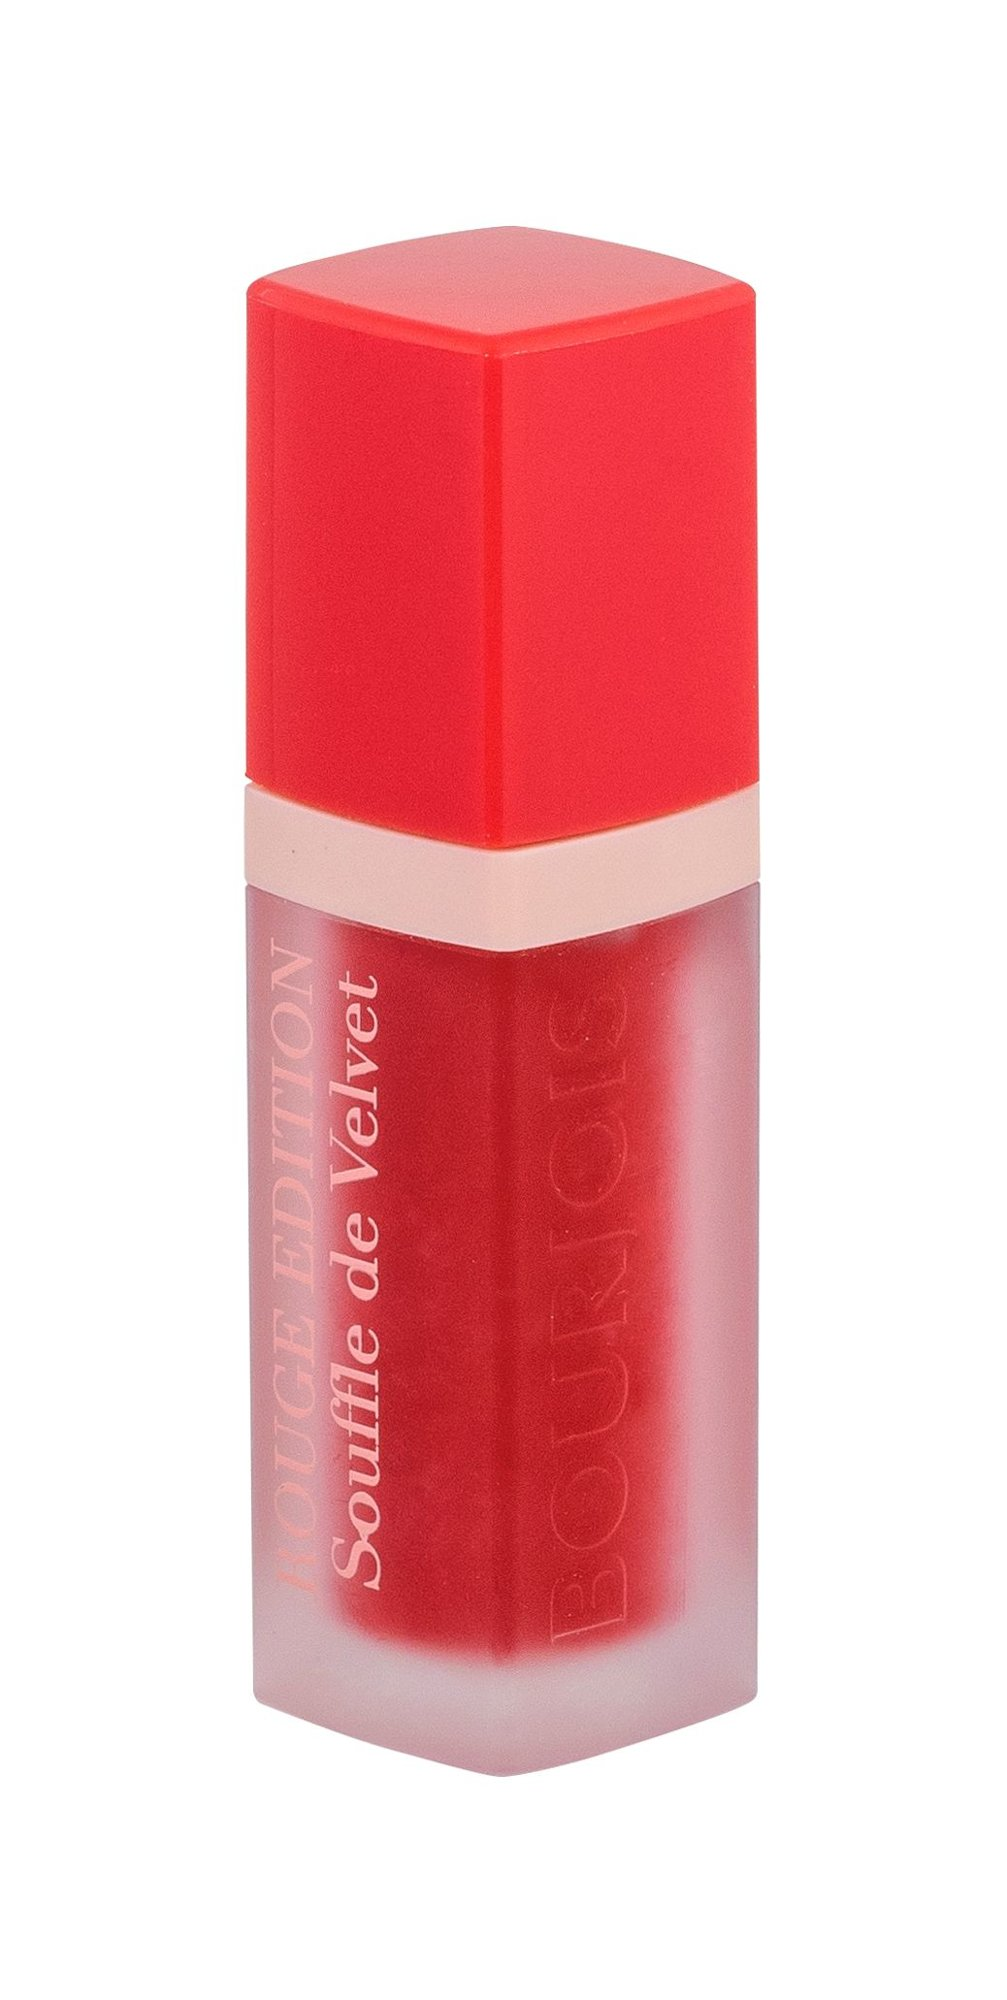 BOURJOIS Paris Rouge Edition Cosmetic 7,7ml 02 Coquelic´oh!